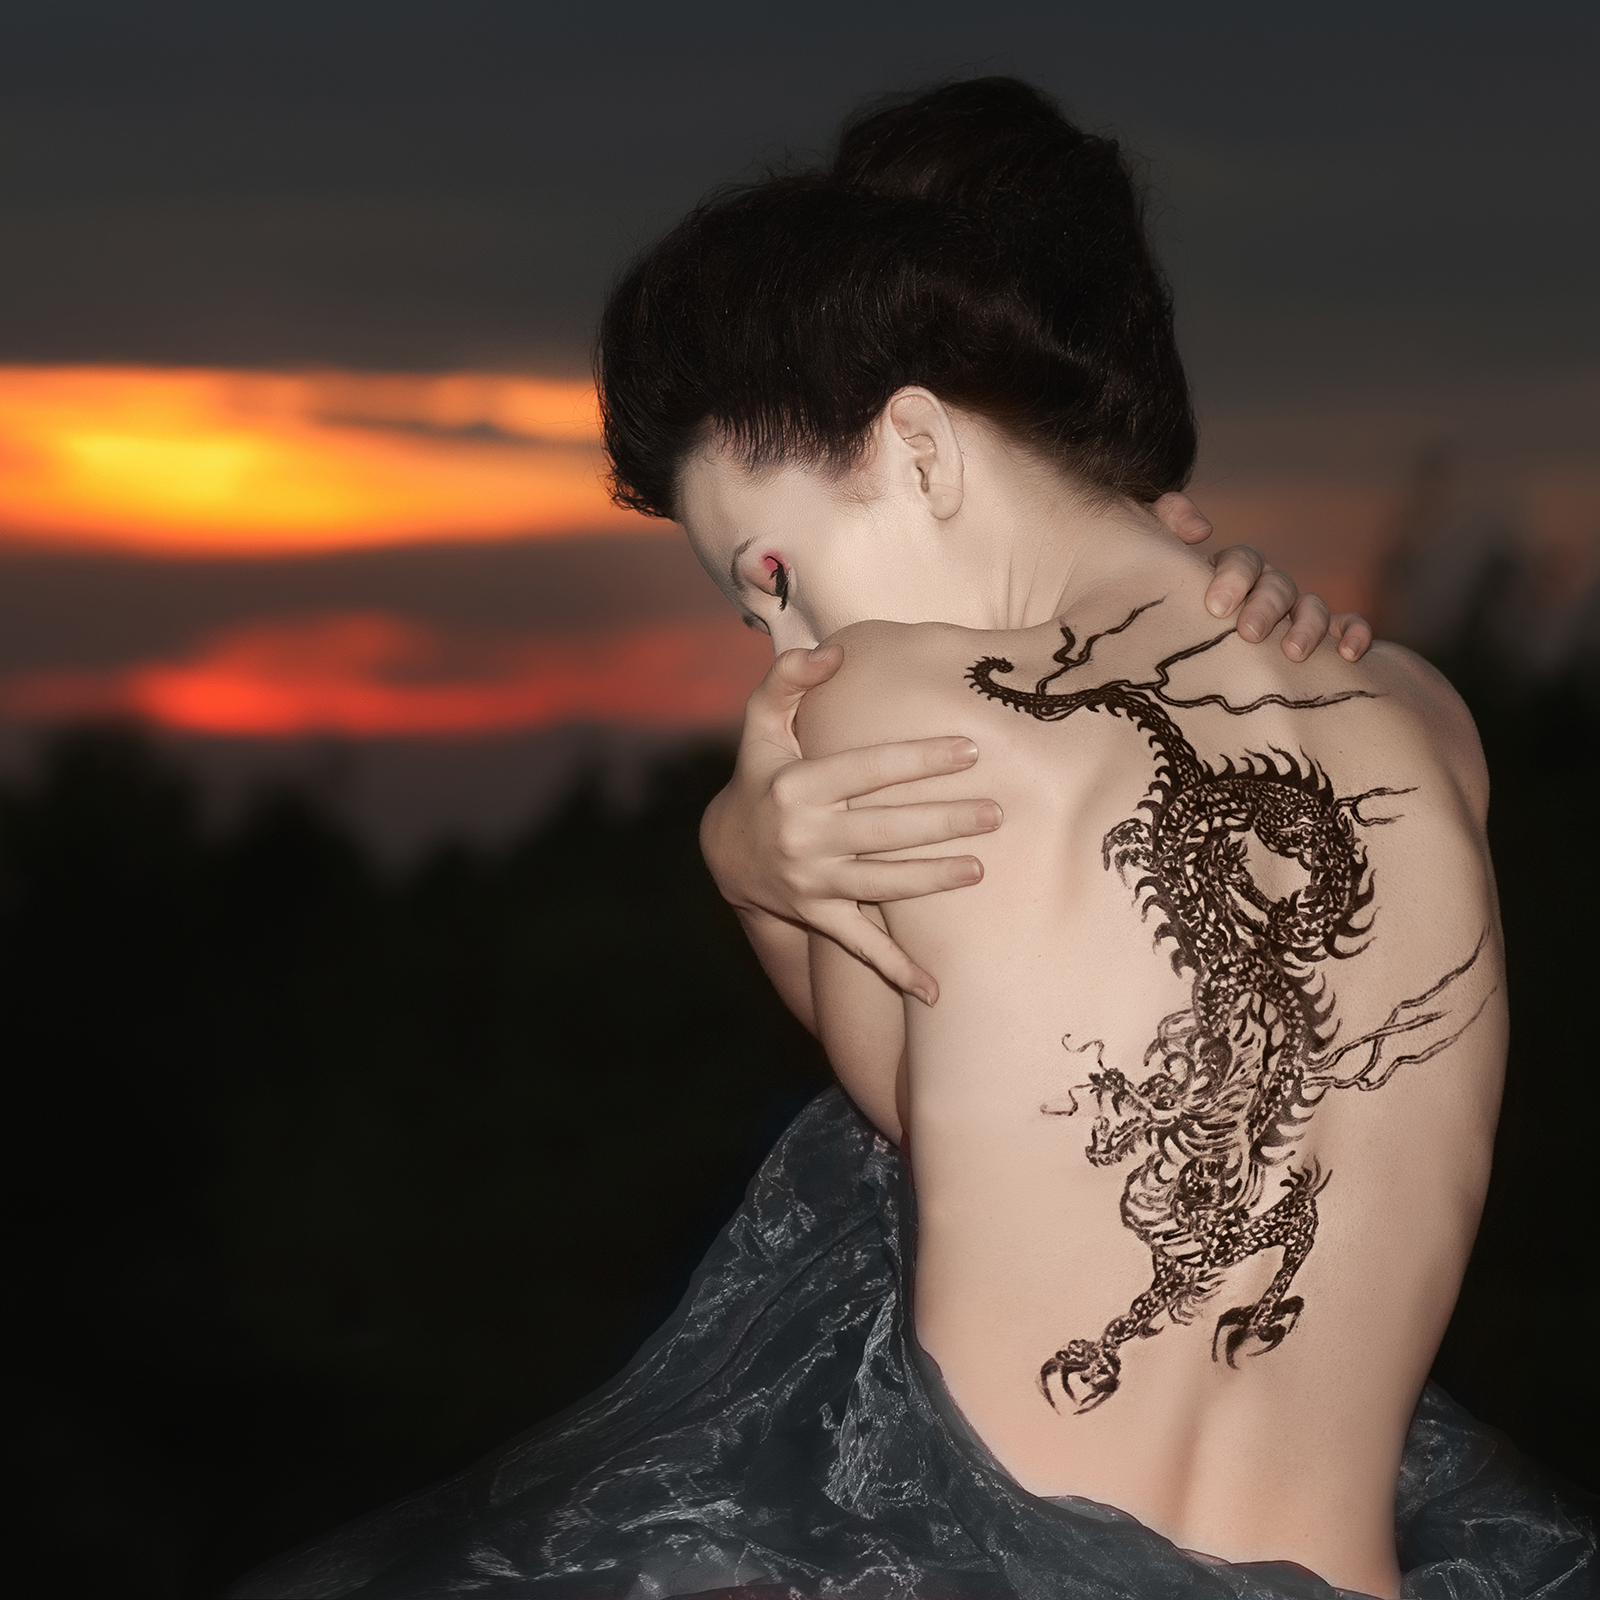 girl-with-dragon-tattoo-FB